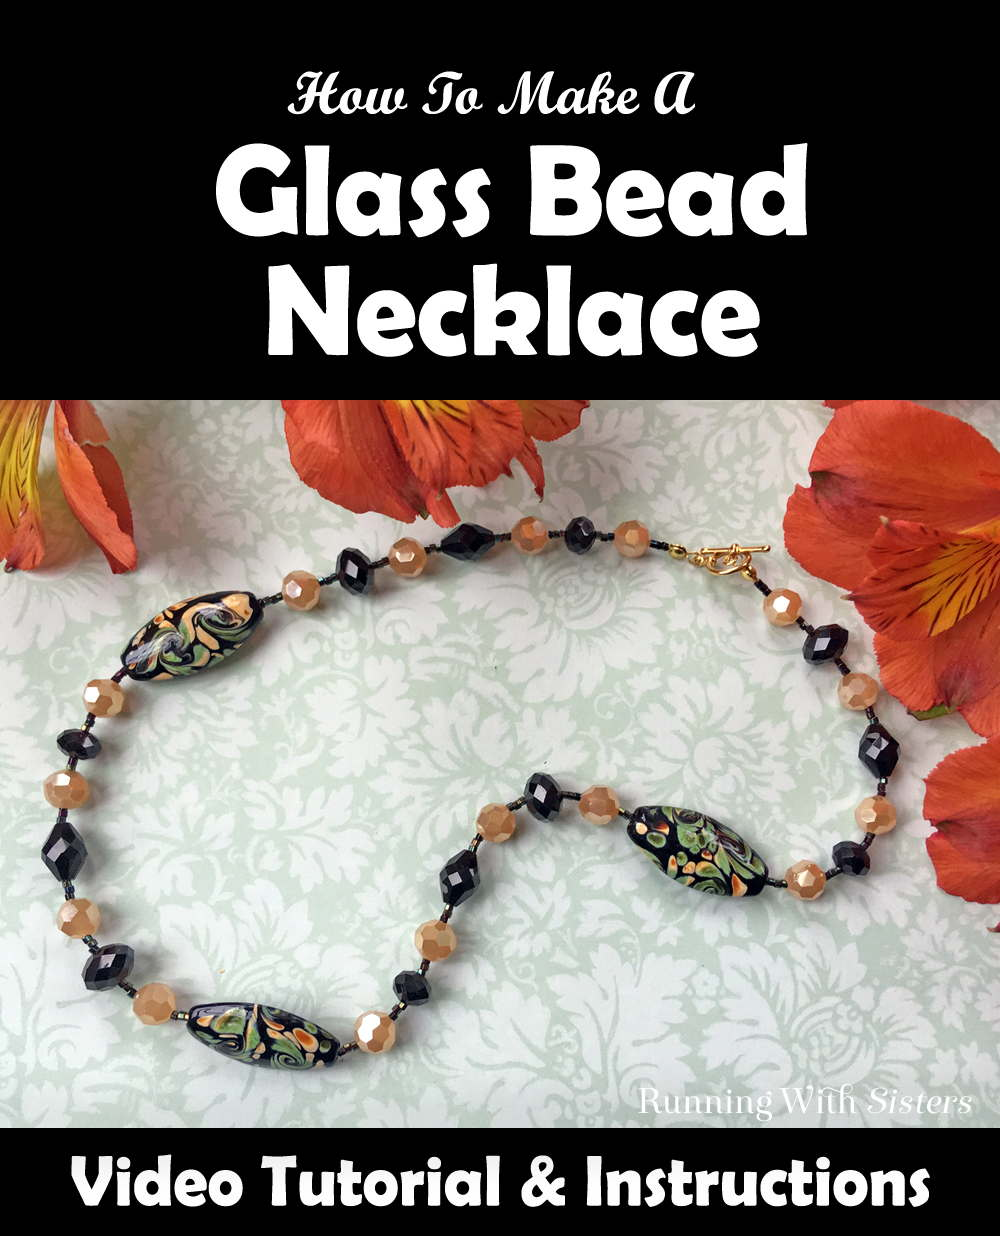 Learn to string a glass bead necklace with this video tutorial. We'll show you what materials to use, how to string the beads, and how to add the clasp.